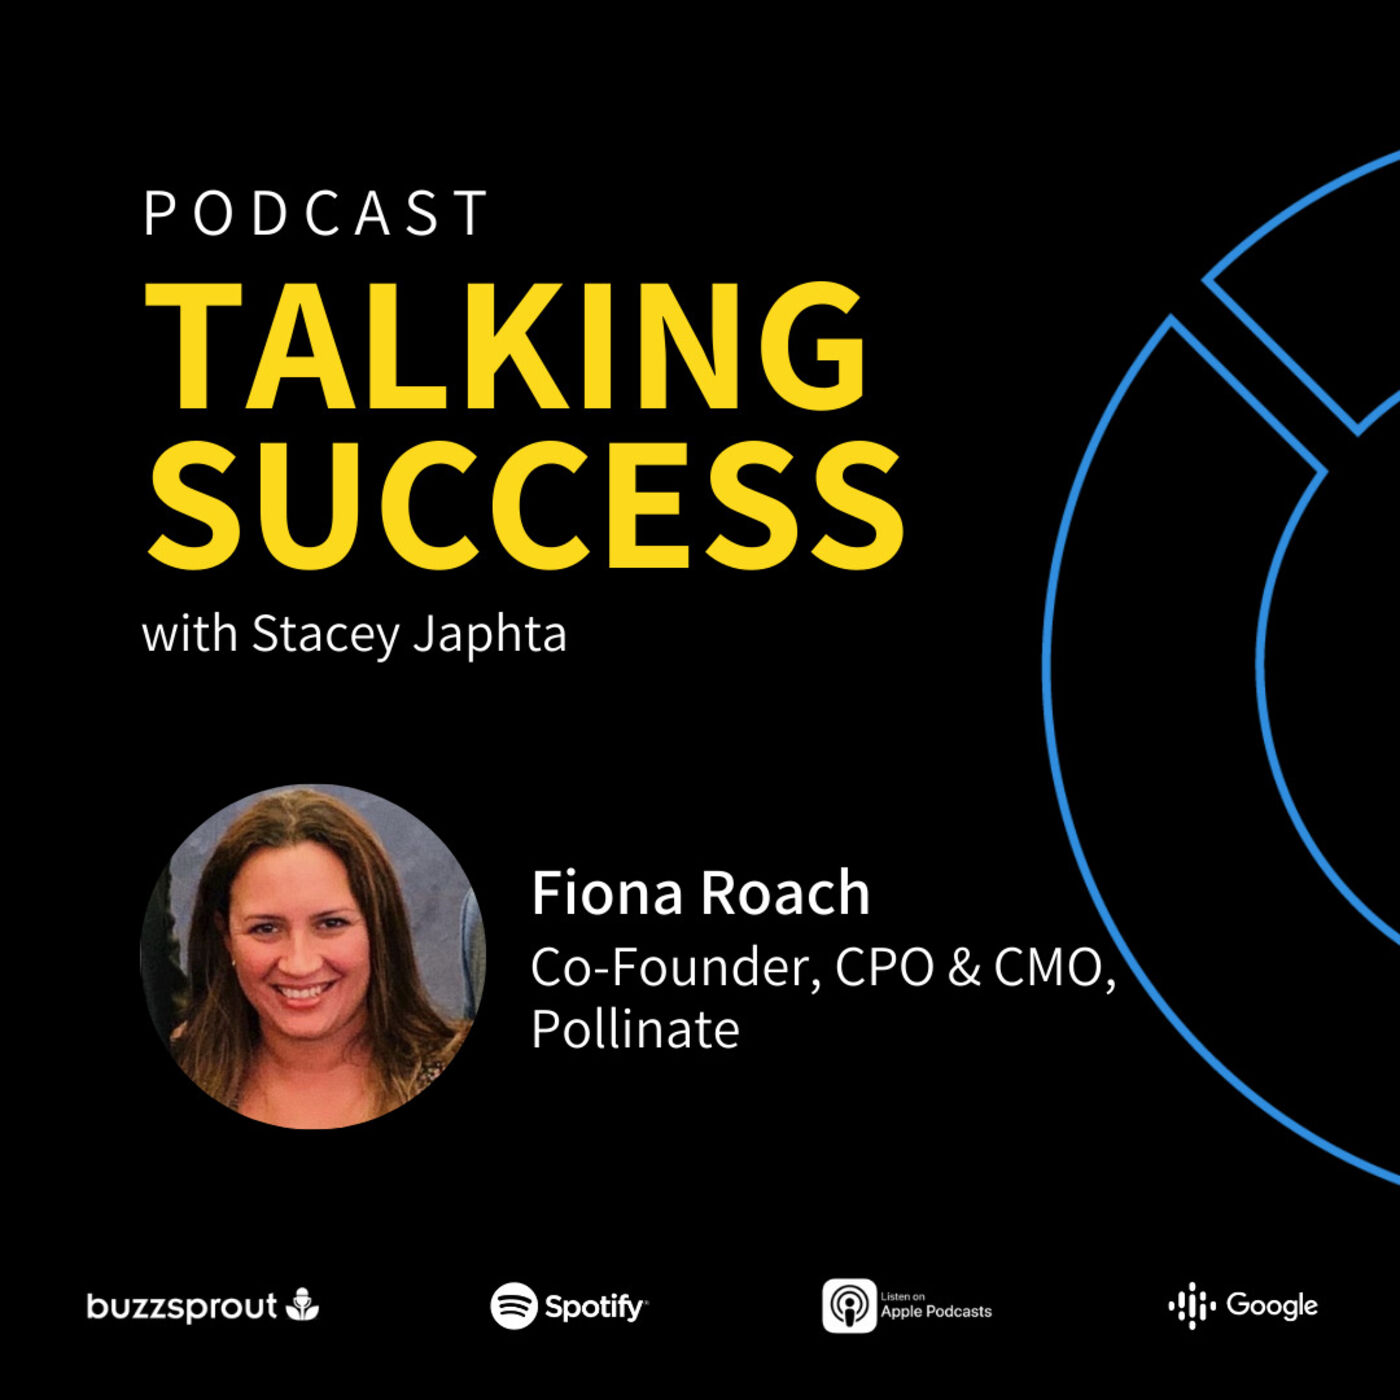 Fiona Roach Canning, Co-founder, Chief Product & Marketing Officer of Pollinate - All things FinTech, diversifying your talent pool, & work/life balance